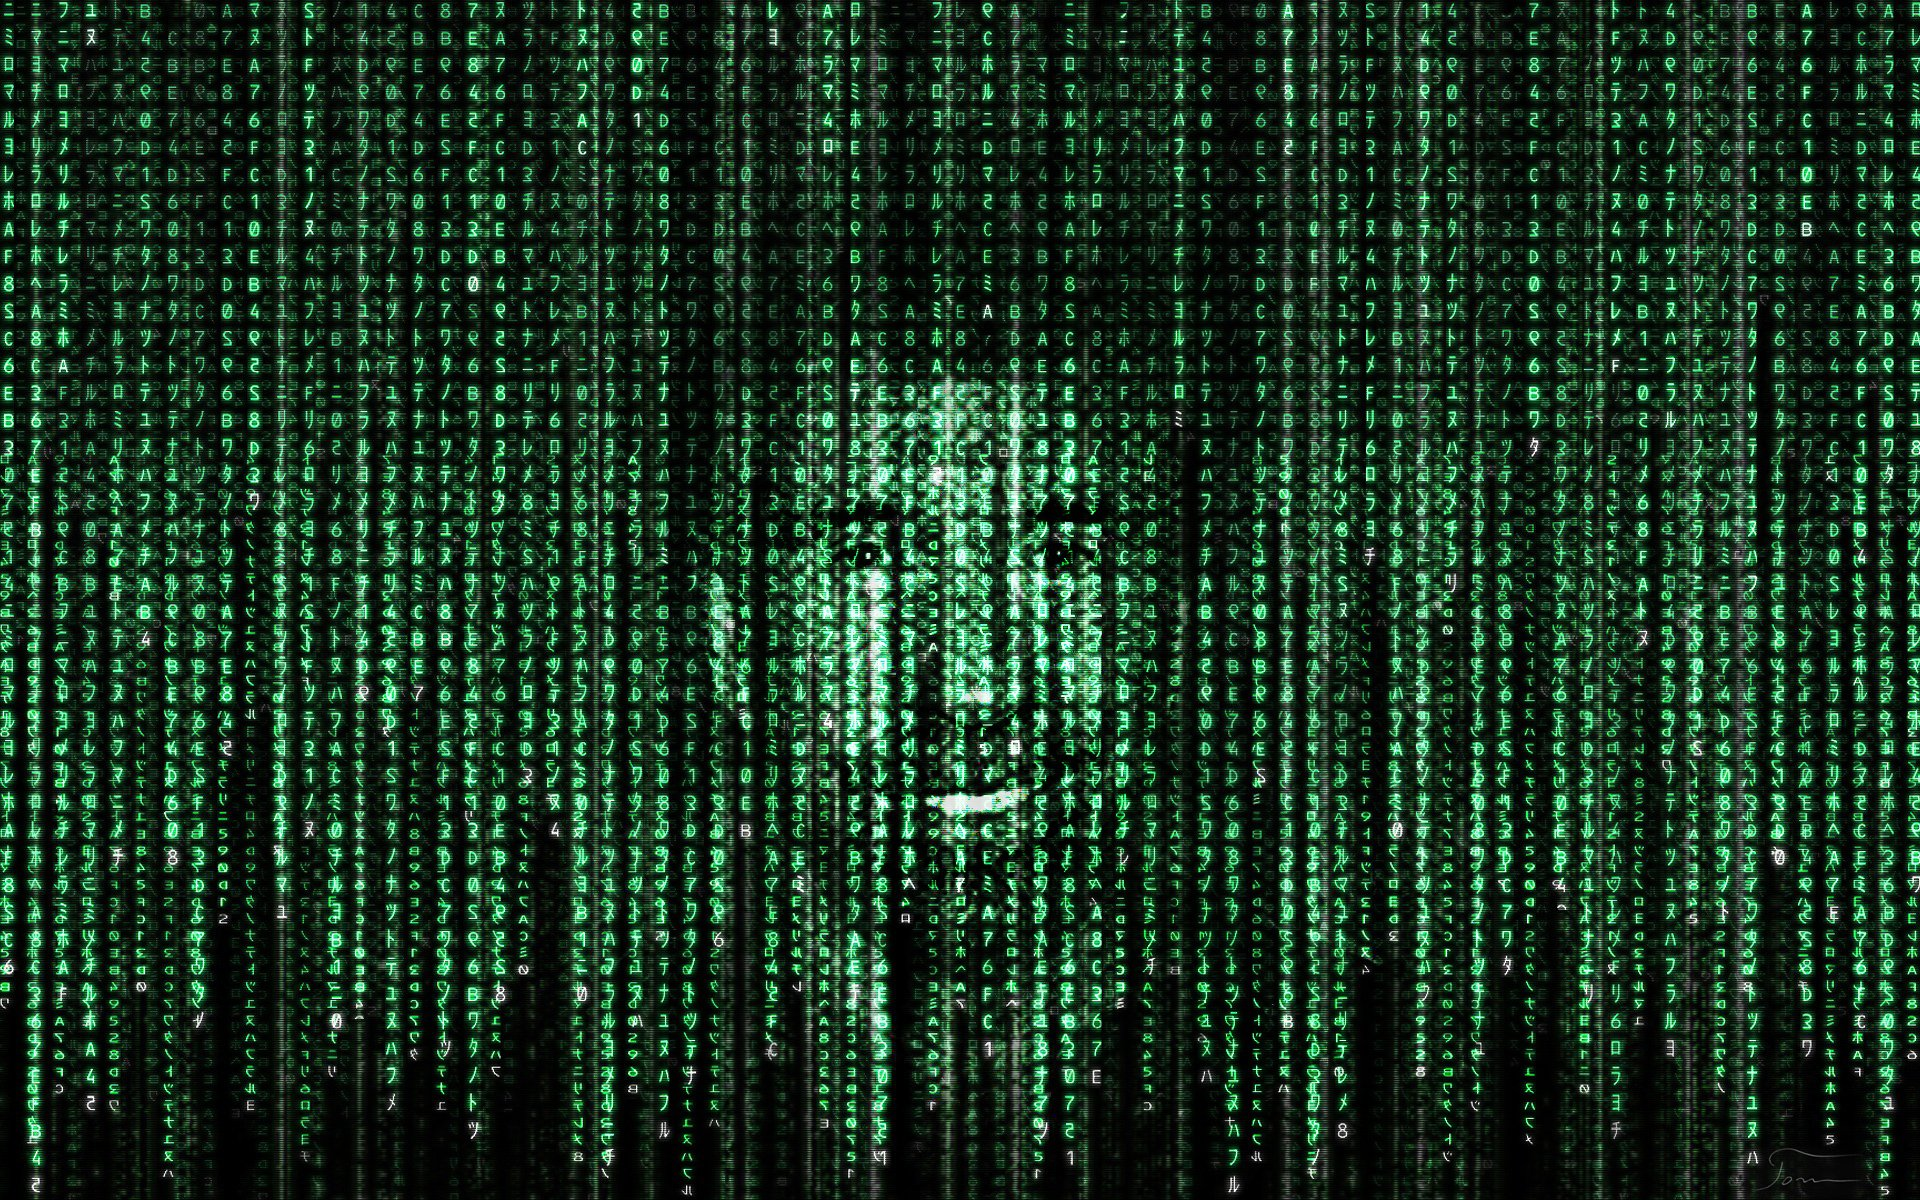 Chuck Norris in matrix code by tomhotovy 1920x1200